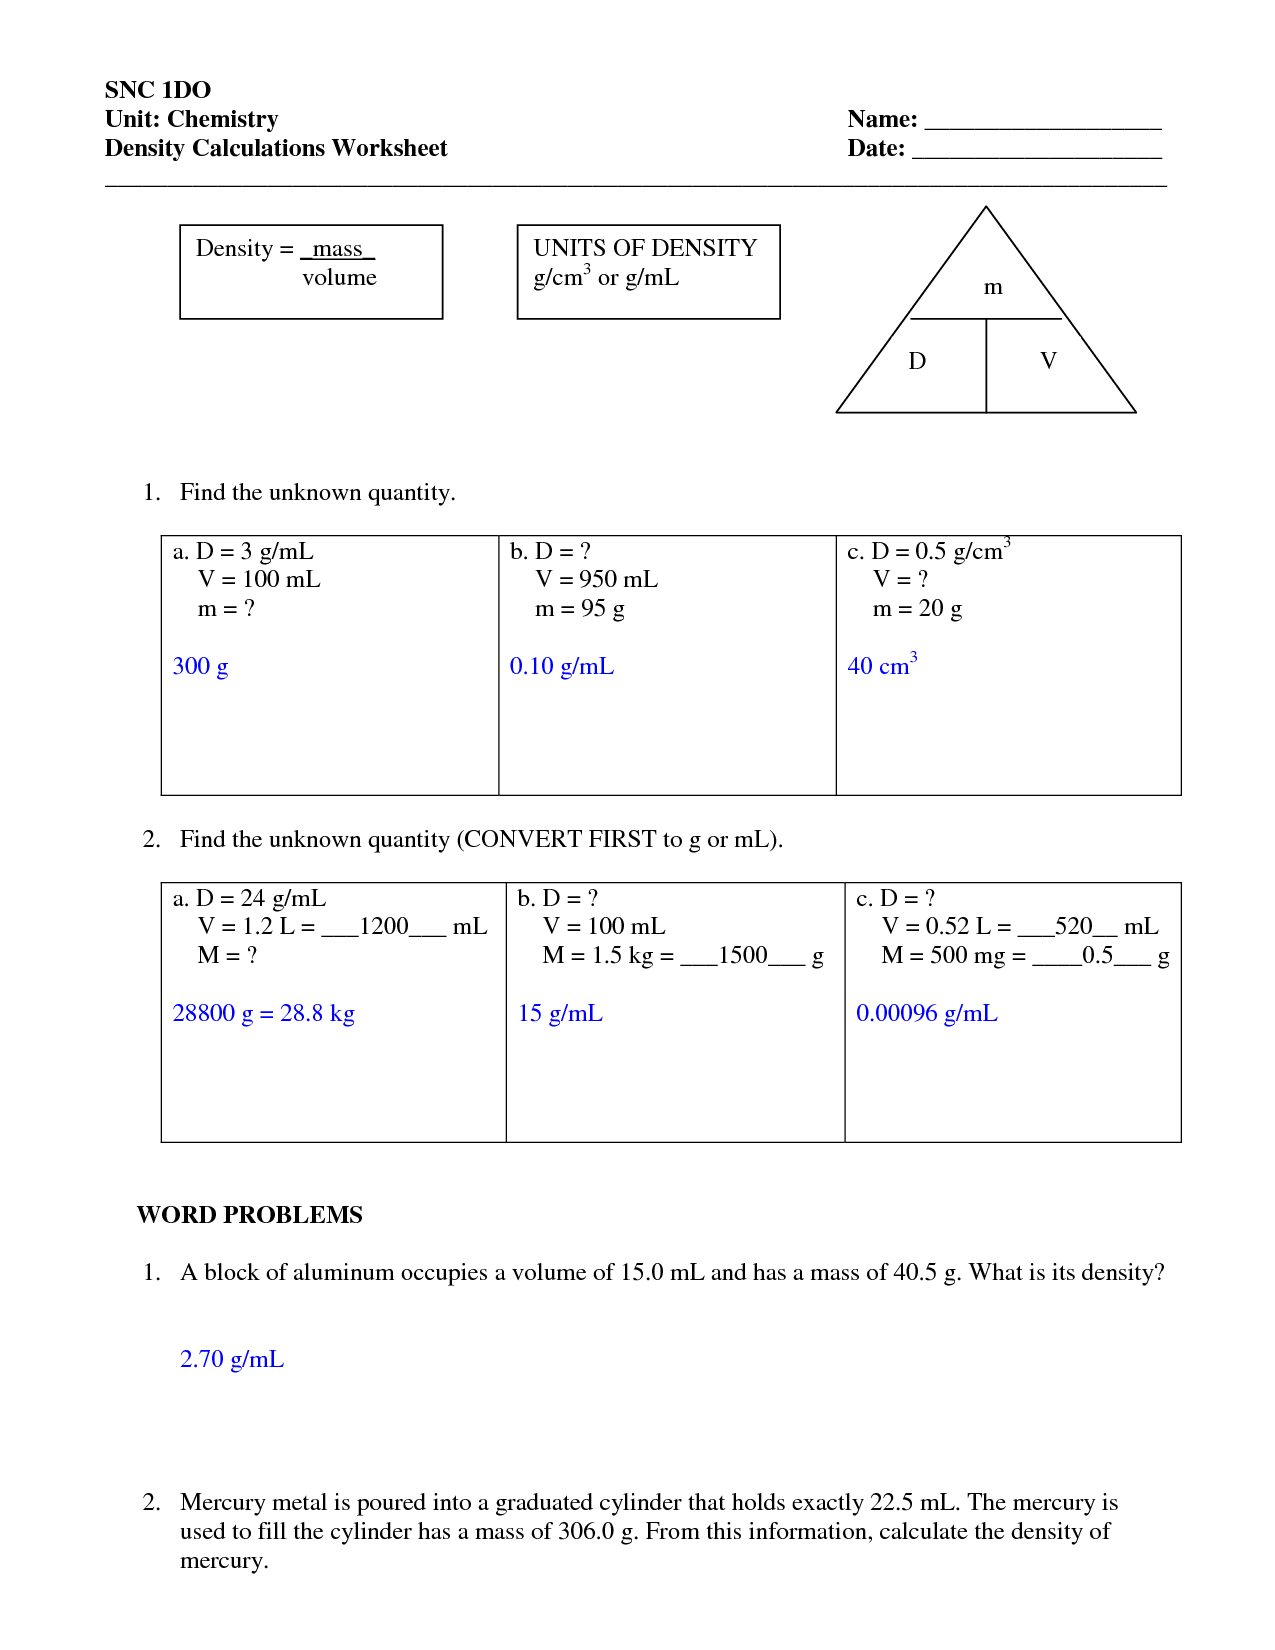 density worksheets with answers – Density Problems Worksheet with Answers